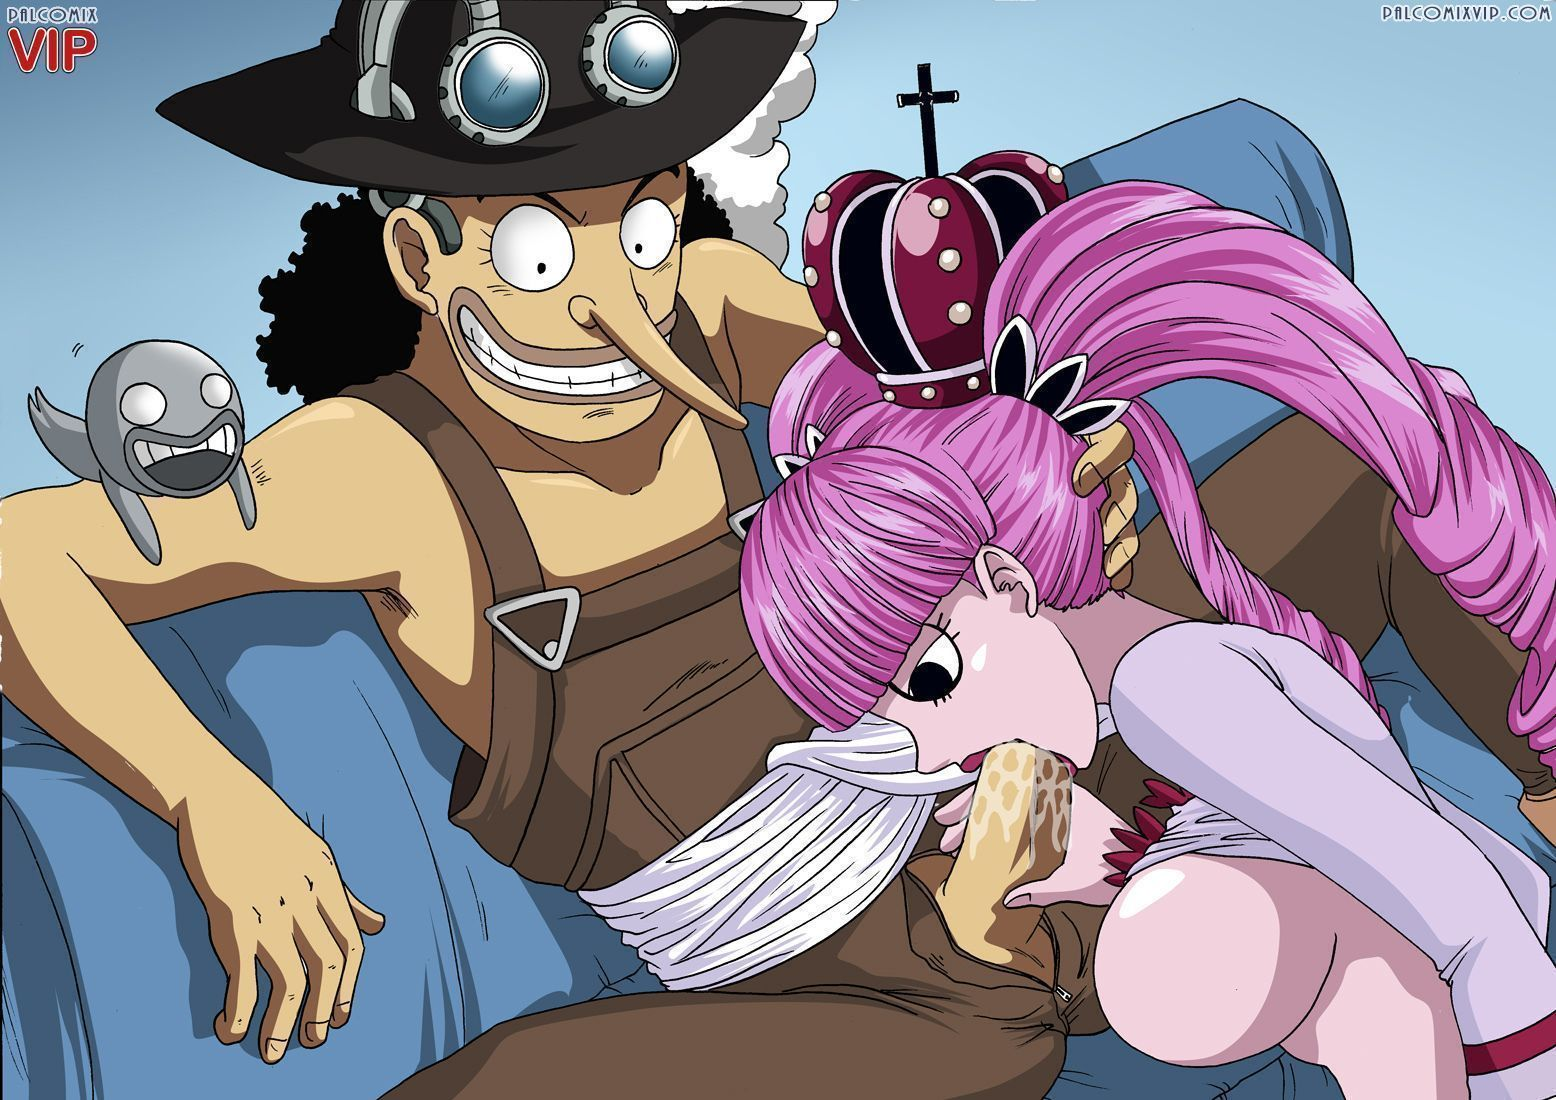 porno xnxx one piece vuxen